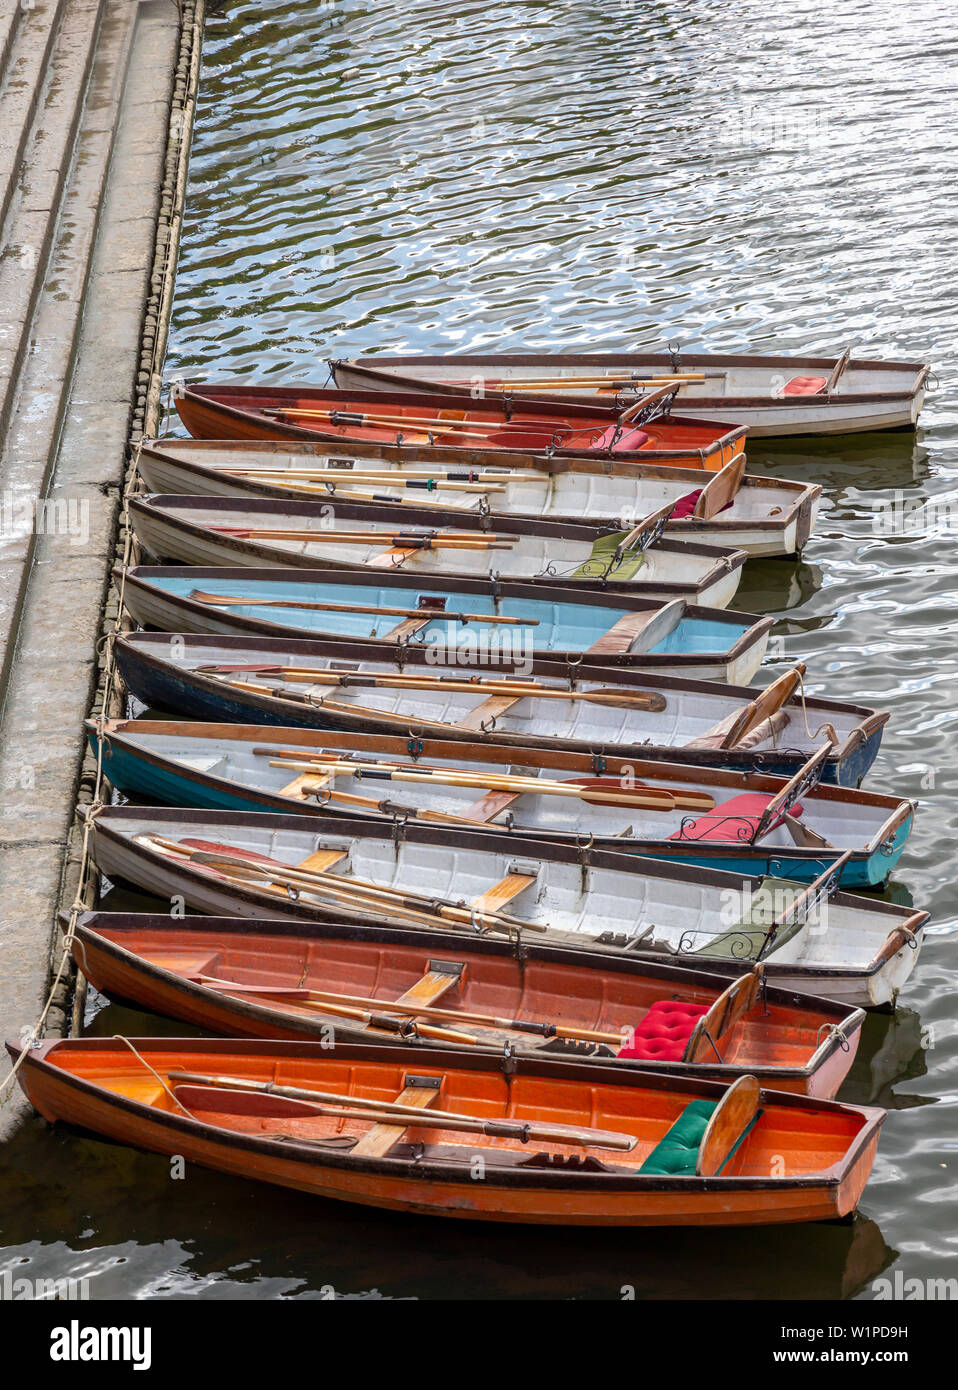 Wooden boats for hire moored on the River Thames, UK - Stock Image